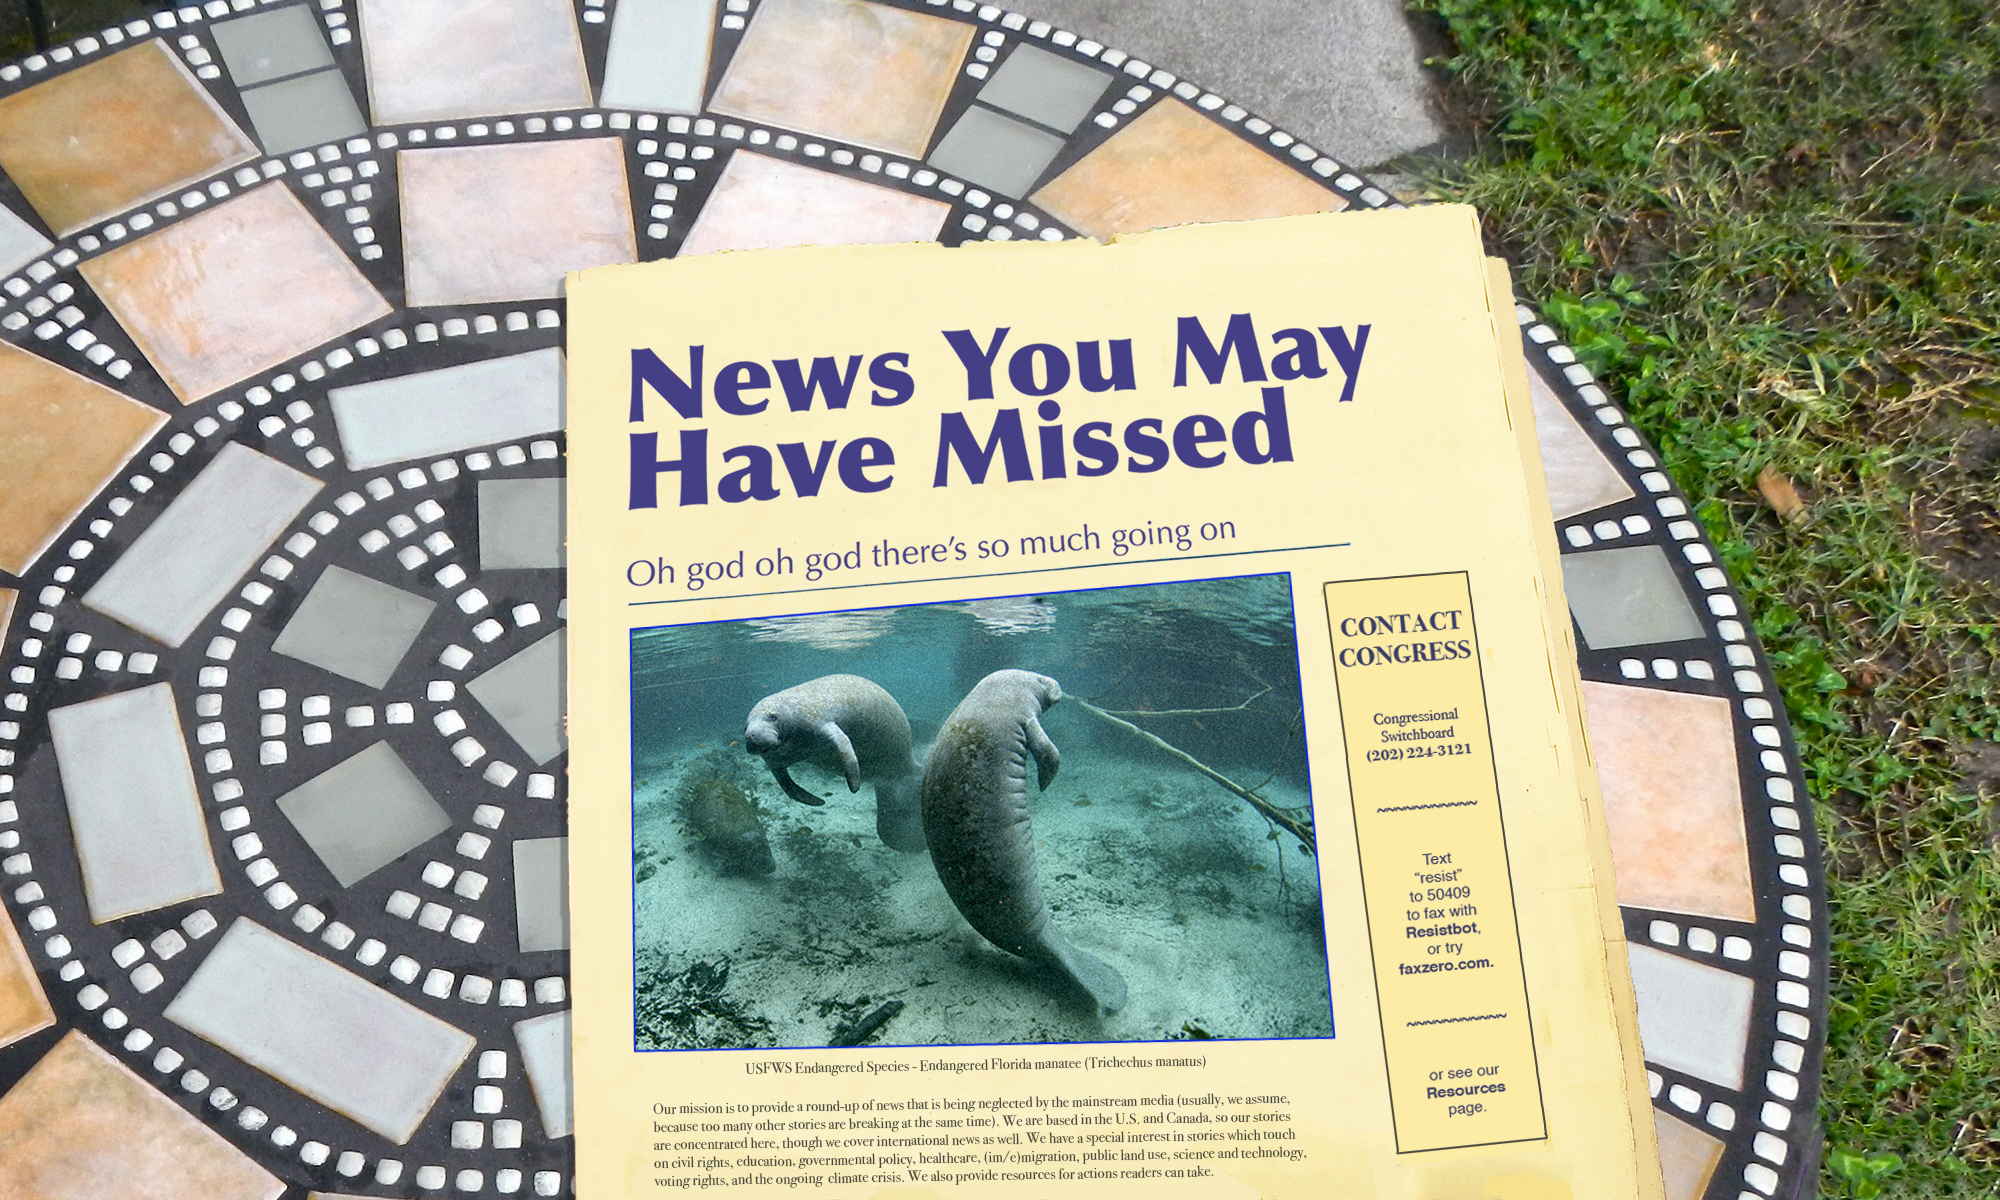 News You May Have Missed